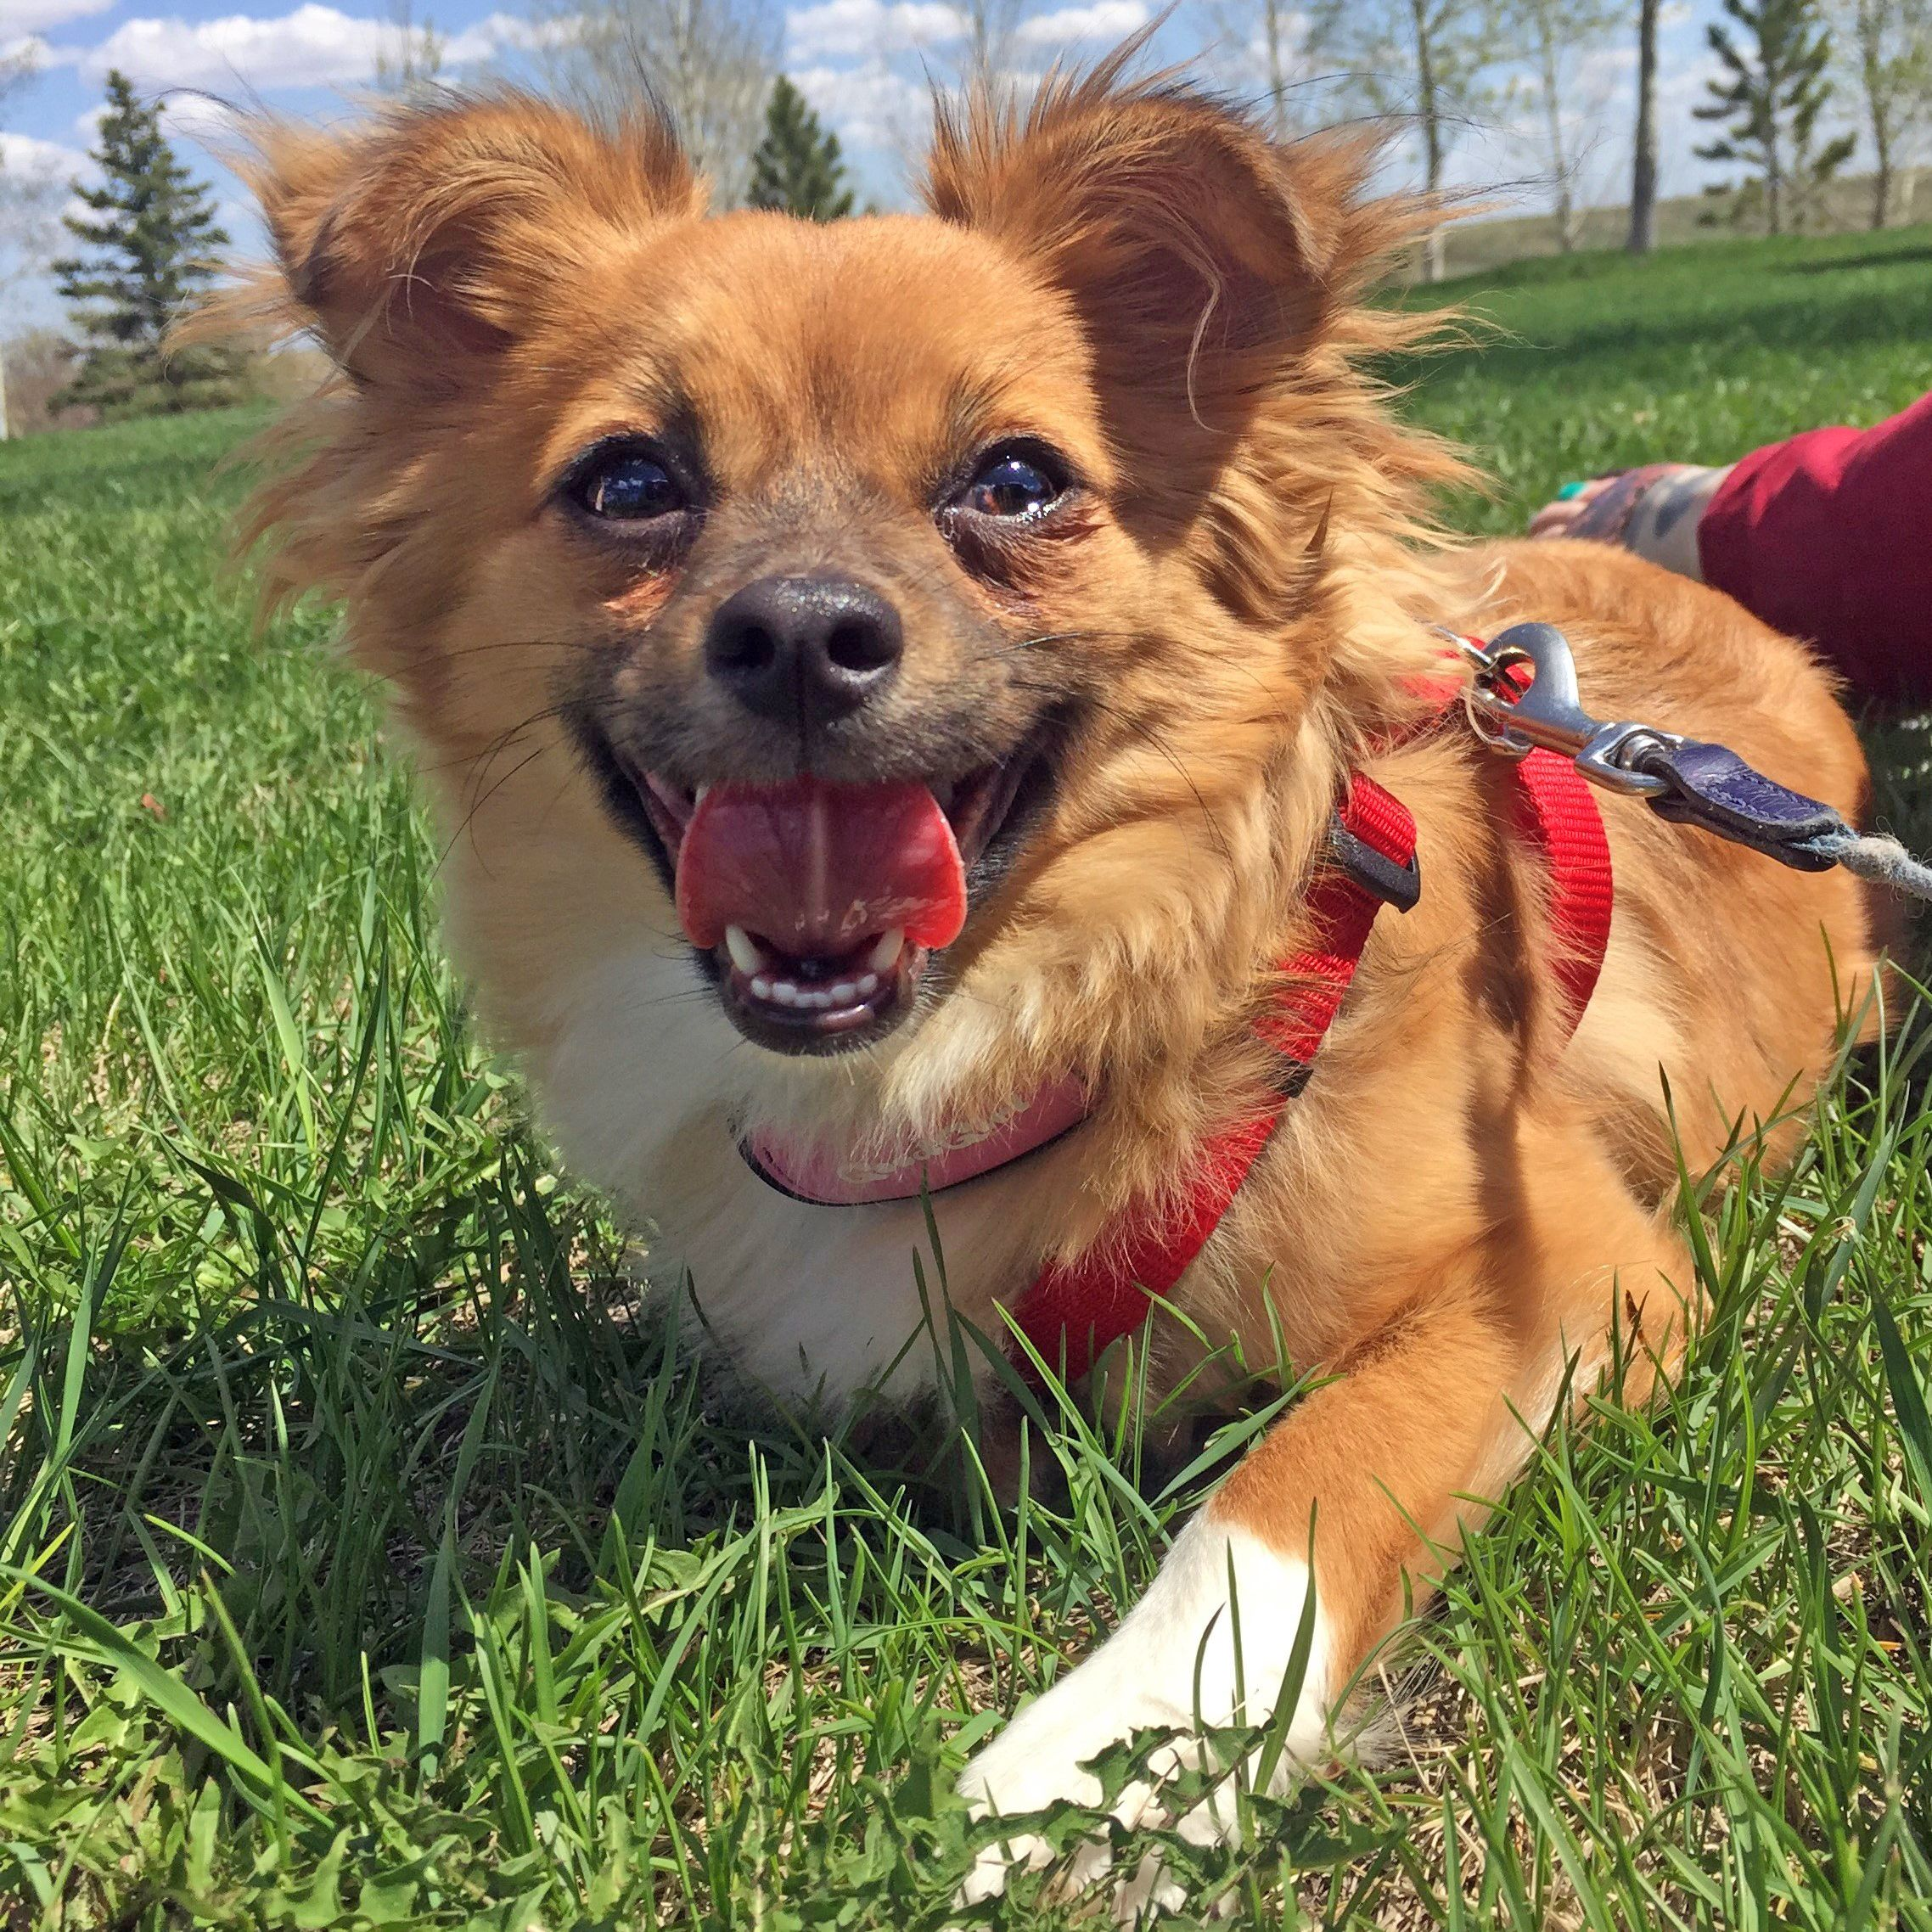 This Is Tiki She Is A Tenderhearted Gal Who Is Looking For A